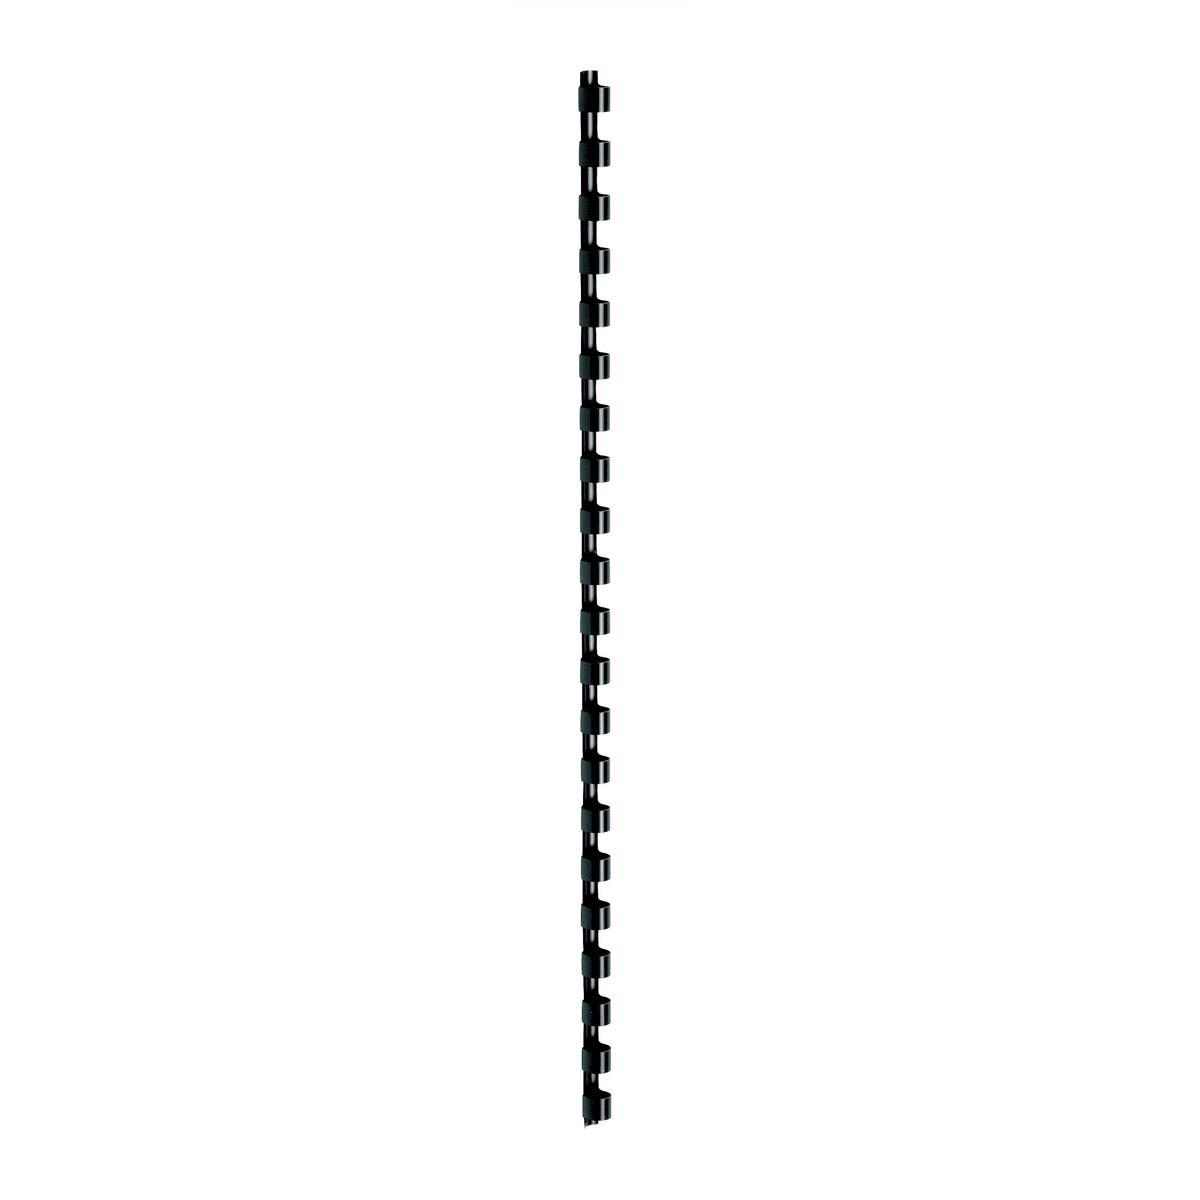 Binding Combs 5 Star Office Binding Combs Plastic 21 Ring 65 Sheets A4 10mm Black Pack 100